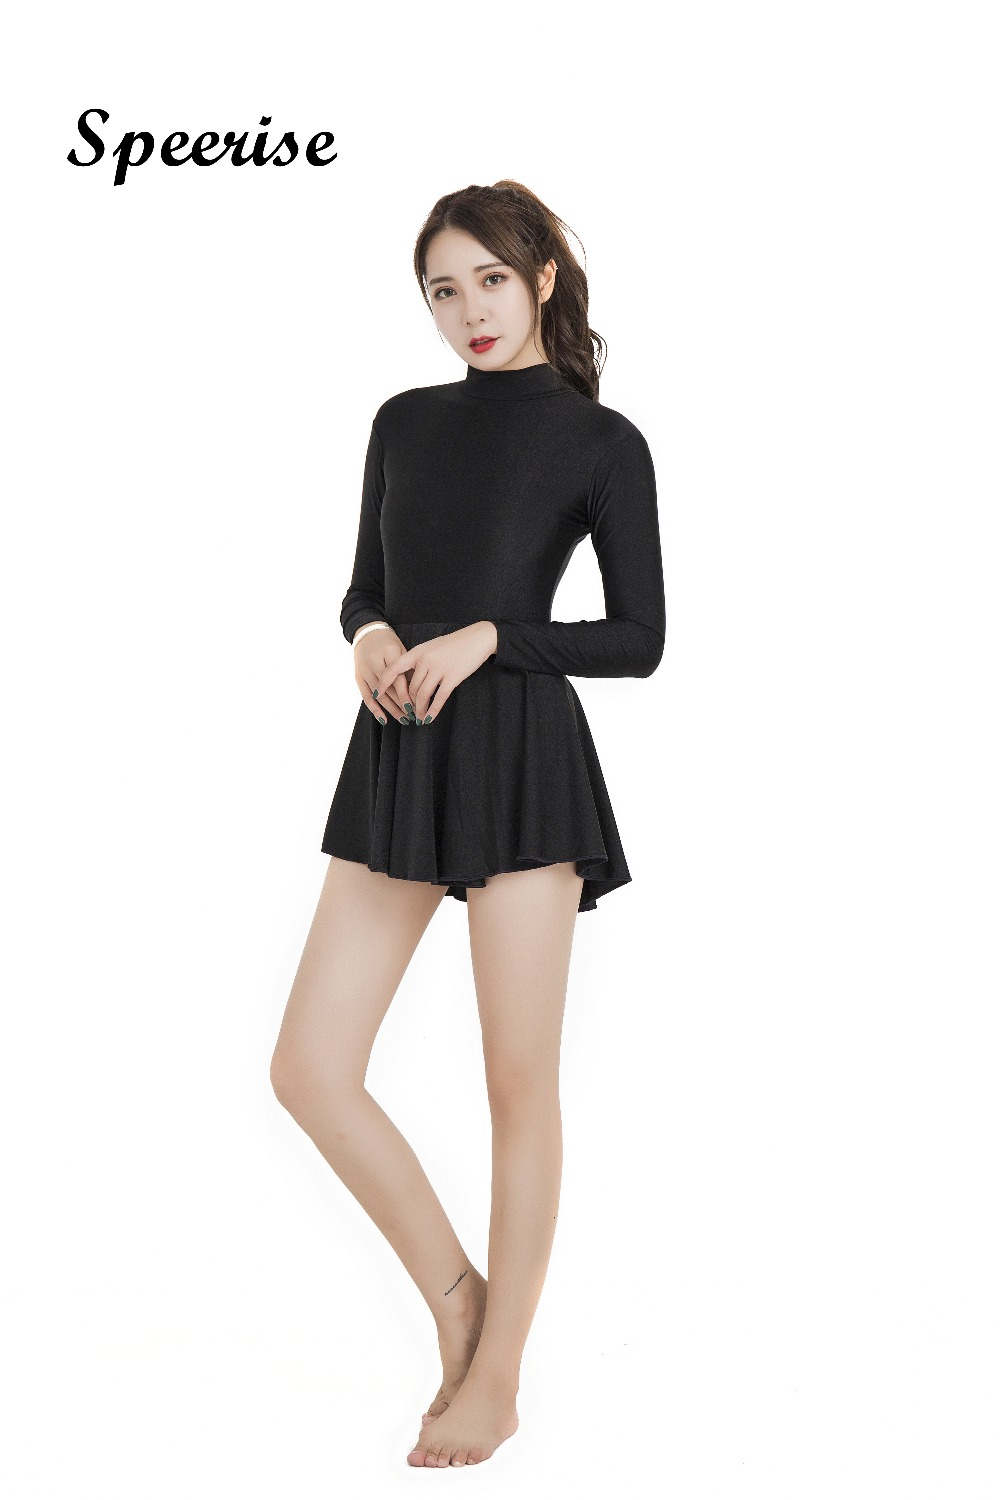 Speerise Womens Turtleneck Long Sleeve Skirted Leotard Ballet Dance Gymnastic Dress Scoop Neck Gymnastics Dresses